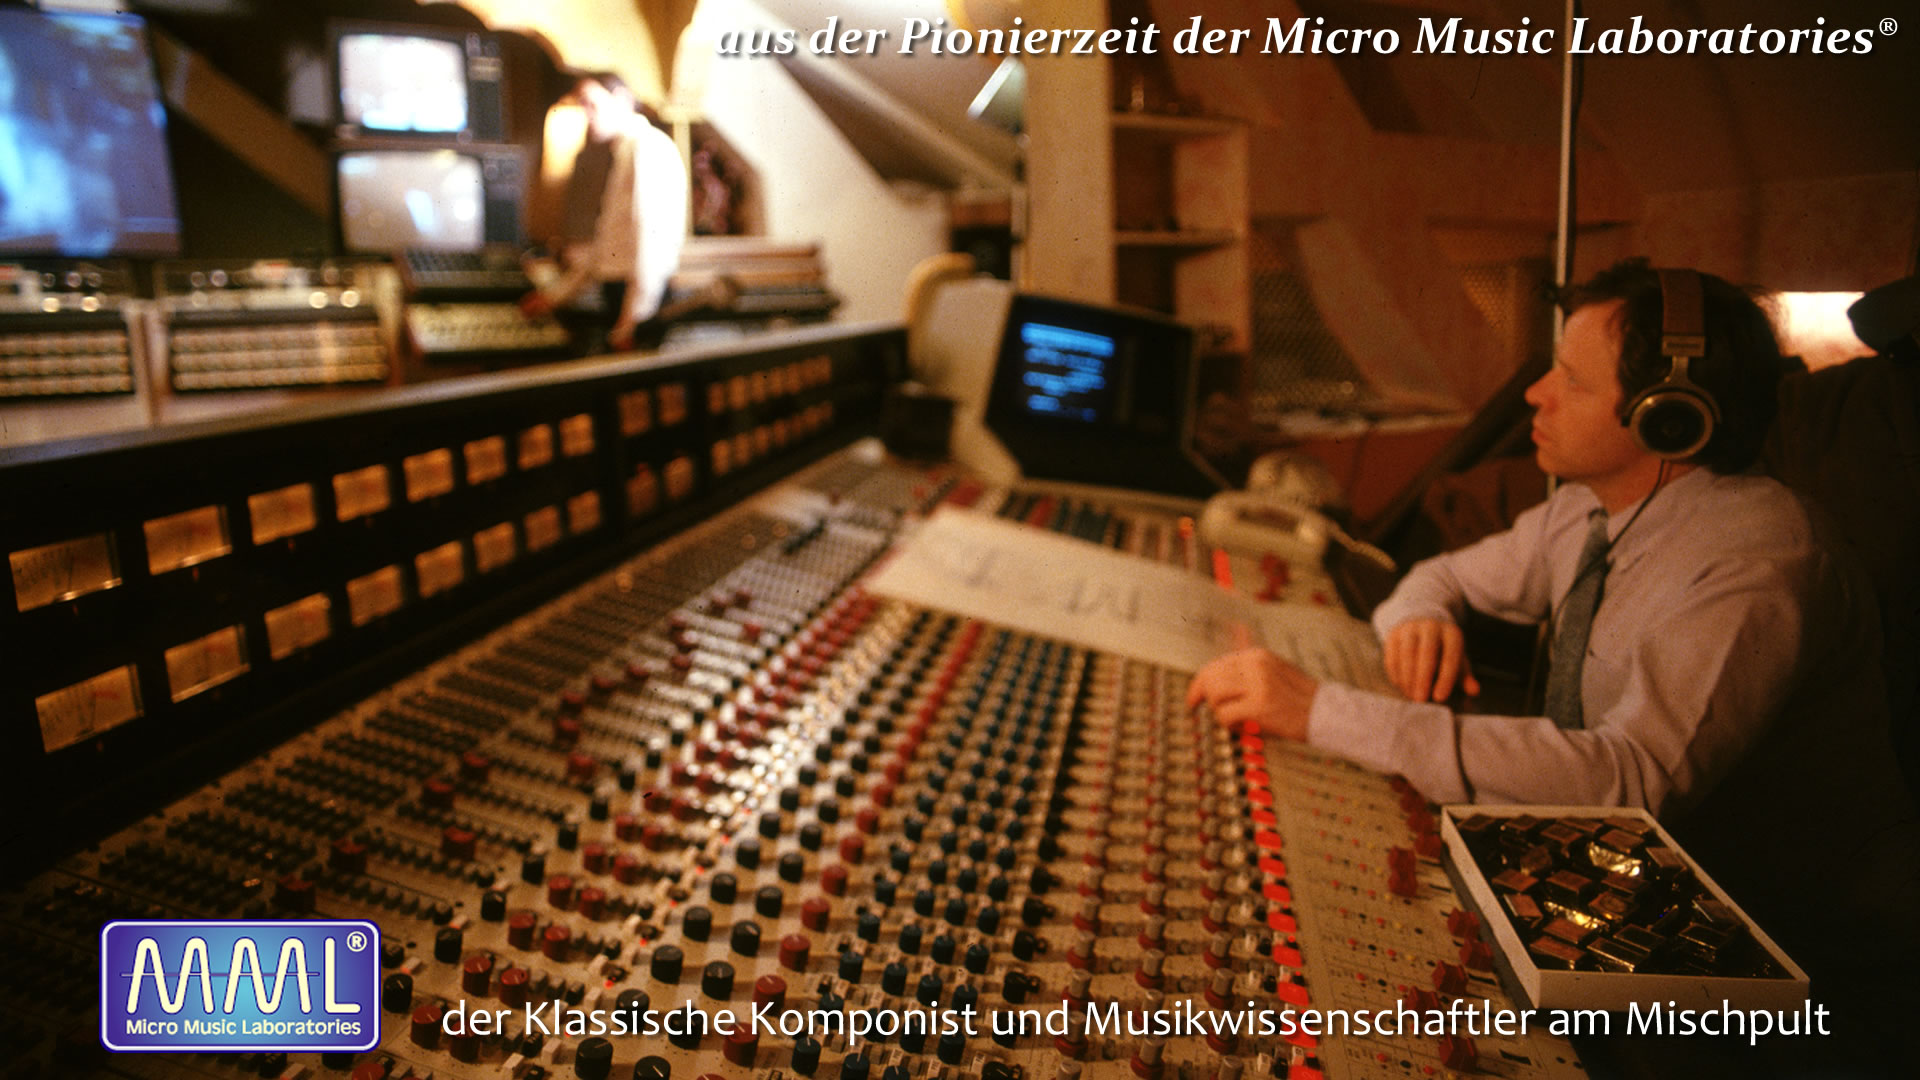 Micro Music Laboratories